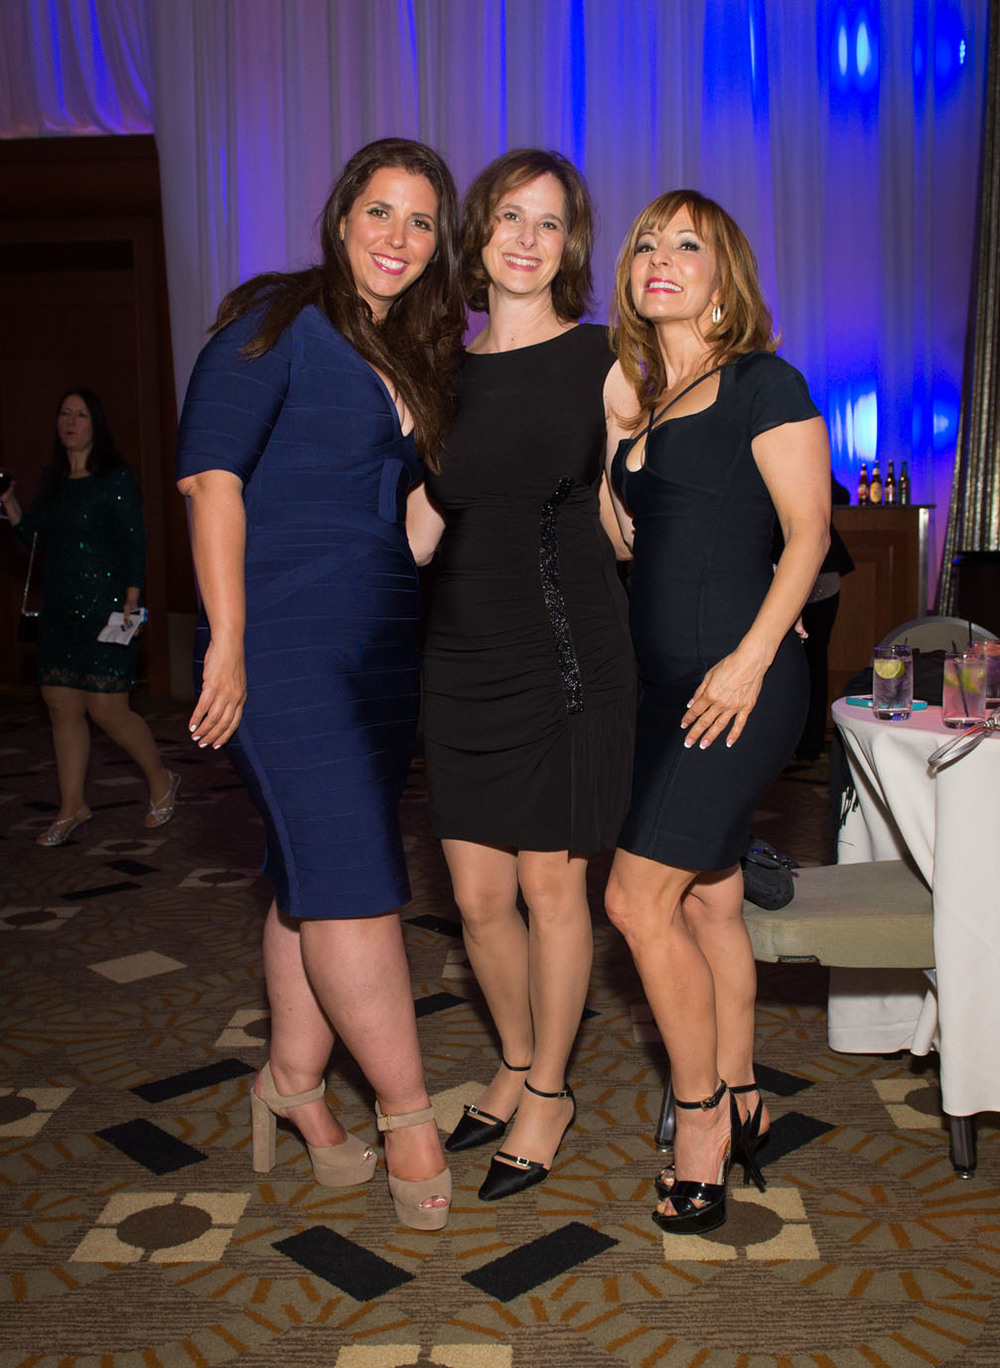 2015-12-09 ReMax Corpoarte Event - The Borgata - Atlantic City NJ - Photo Sesh - 2015-5039.jpg